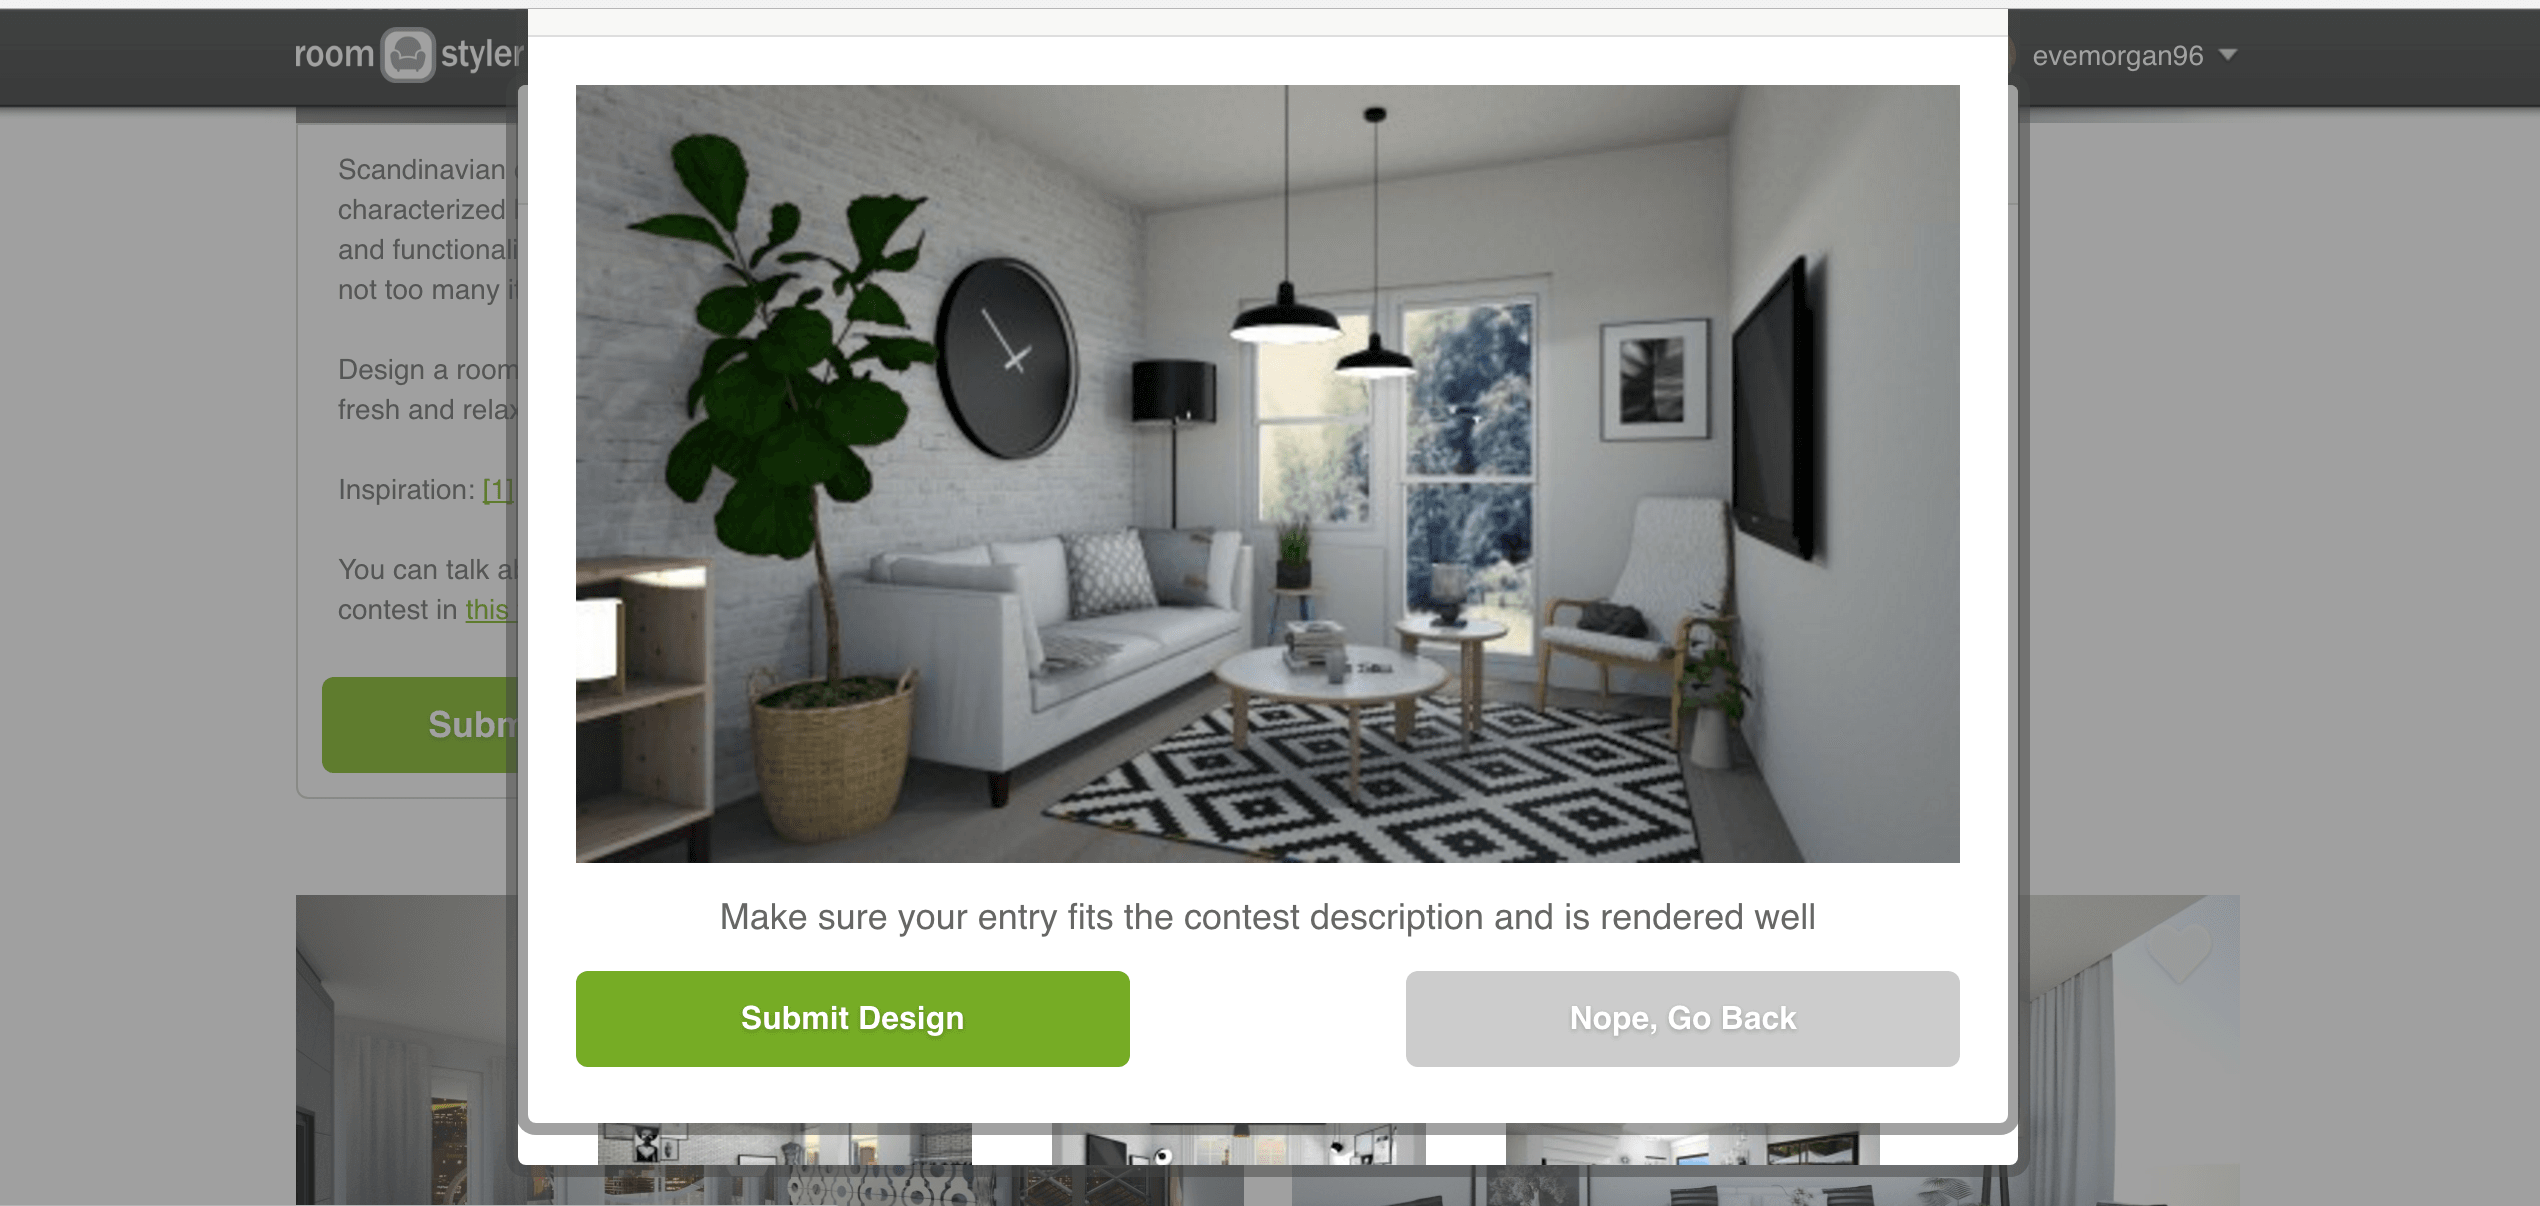 Want To Create Awesome Photorealistic Visuals? Roomstyler Is Here To Help!  Roomstyler Is An